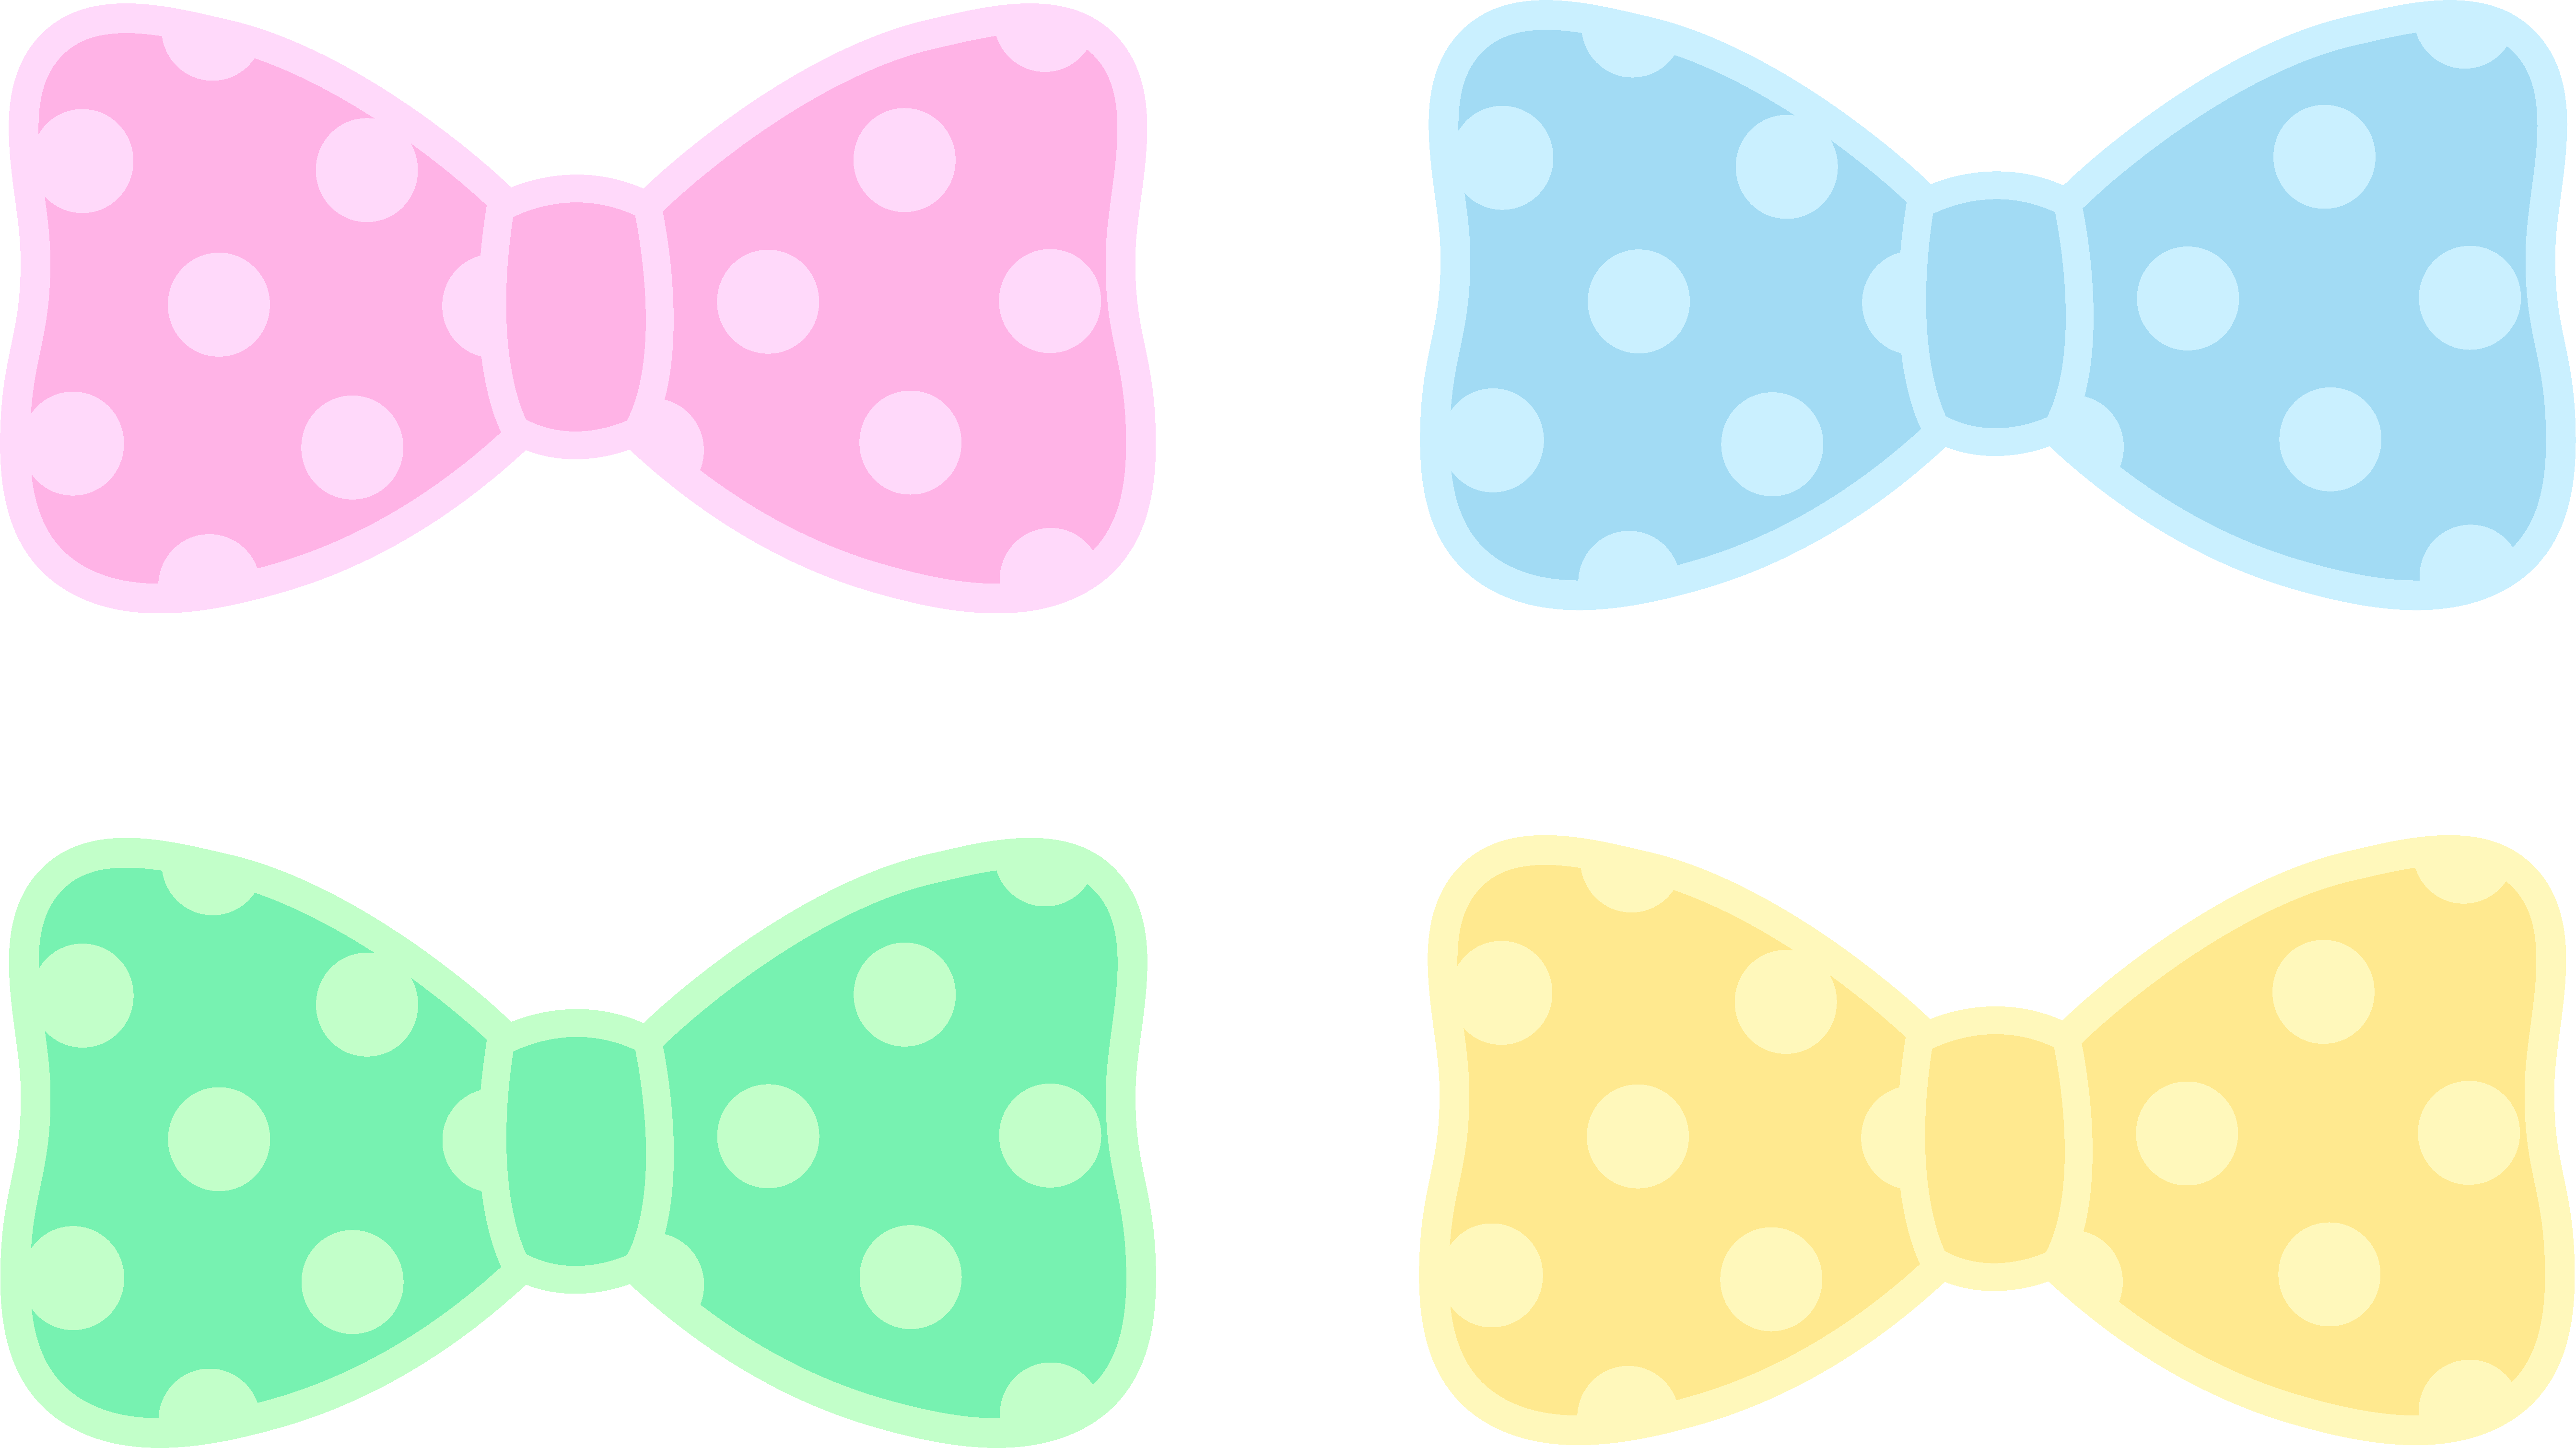 Pastel clipart svg freeuse stock Cute Polka Dot Pastel Bows - Free Clip Art svg freeuse stock